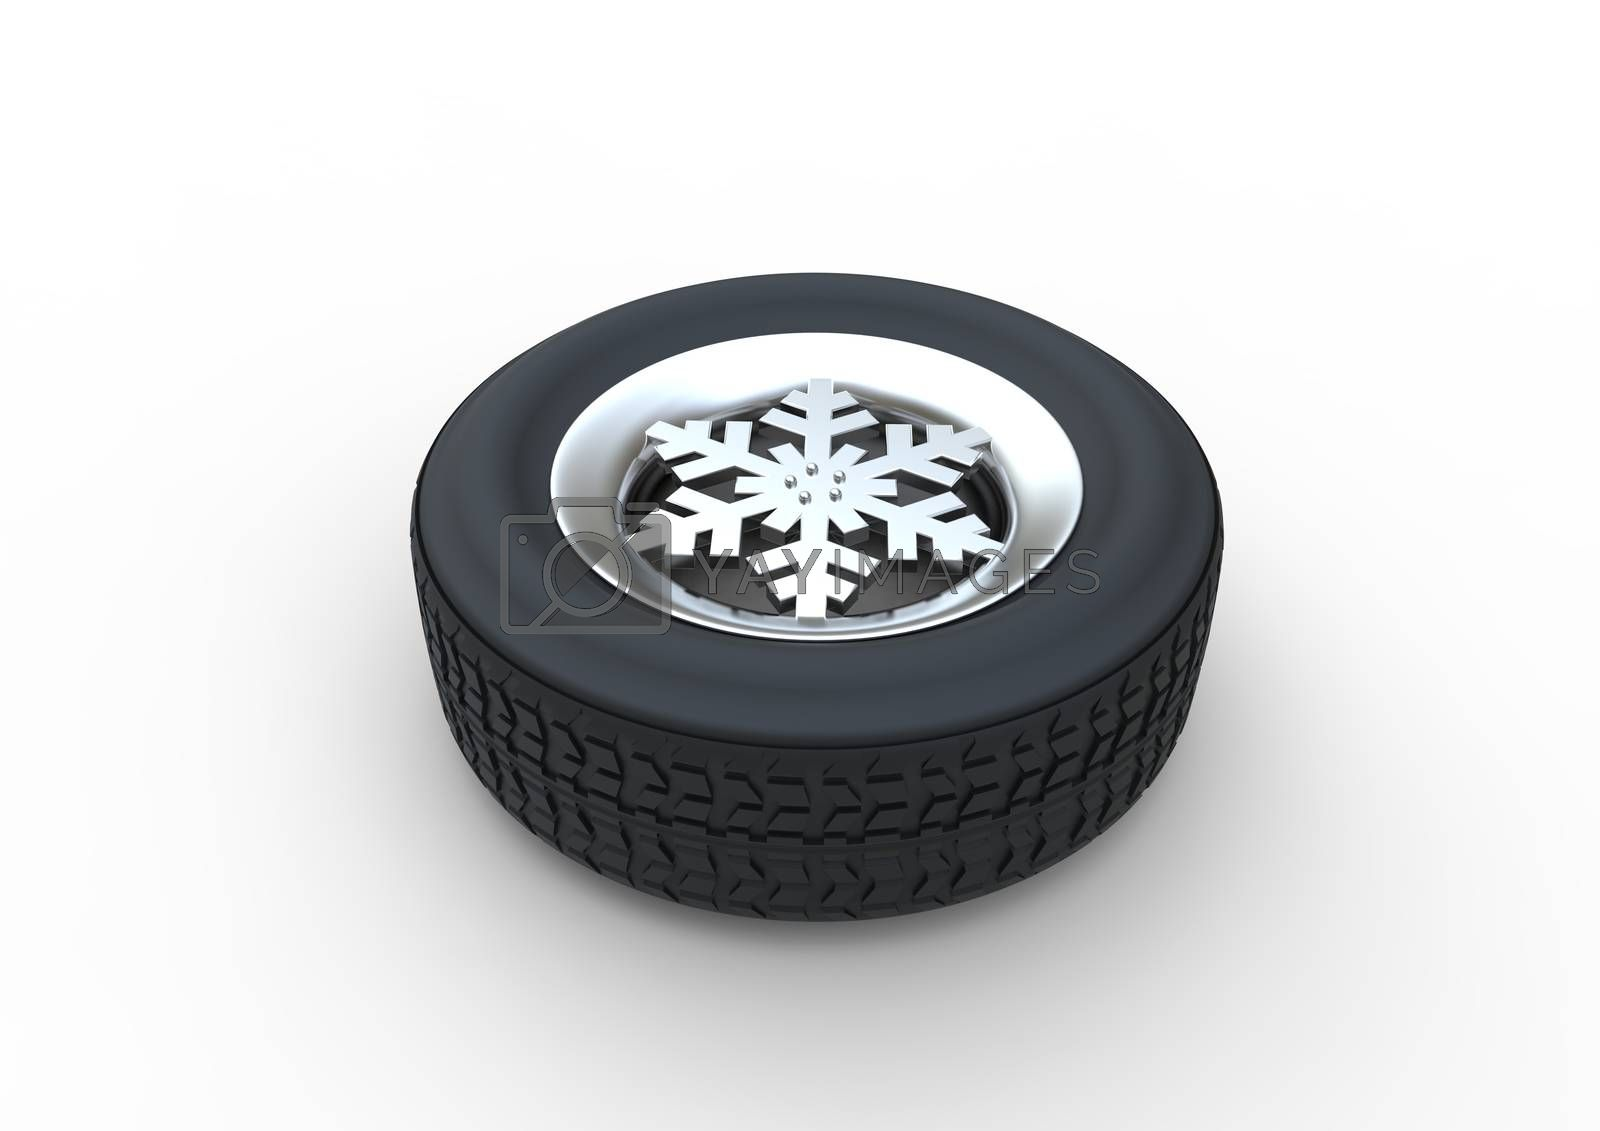 Set of winter tires with the rim of snowflake shape isolated on white background 3d illustration